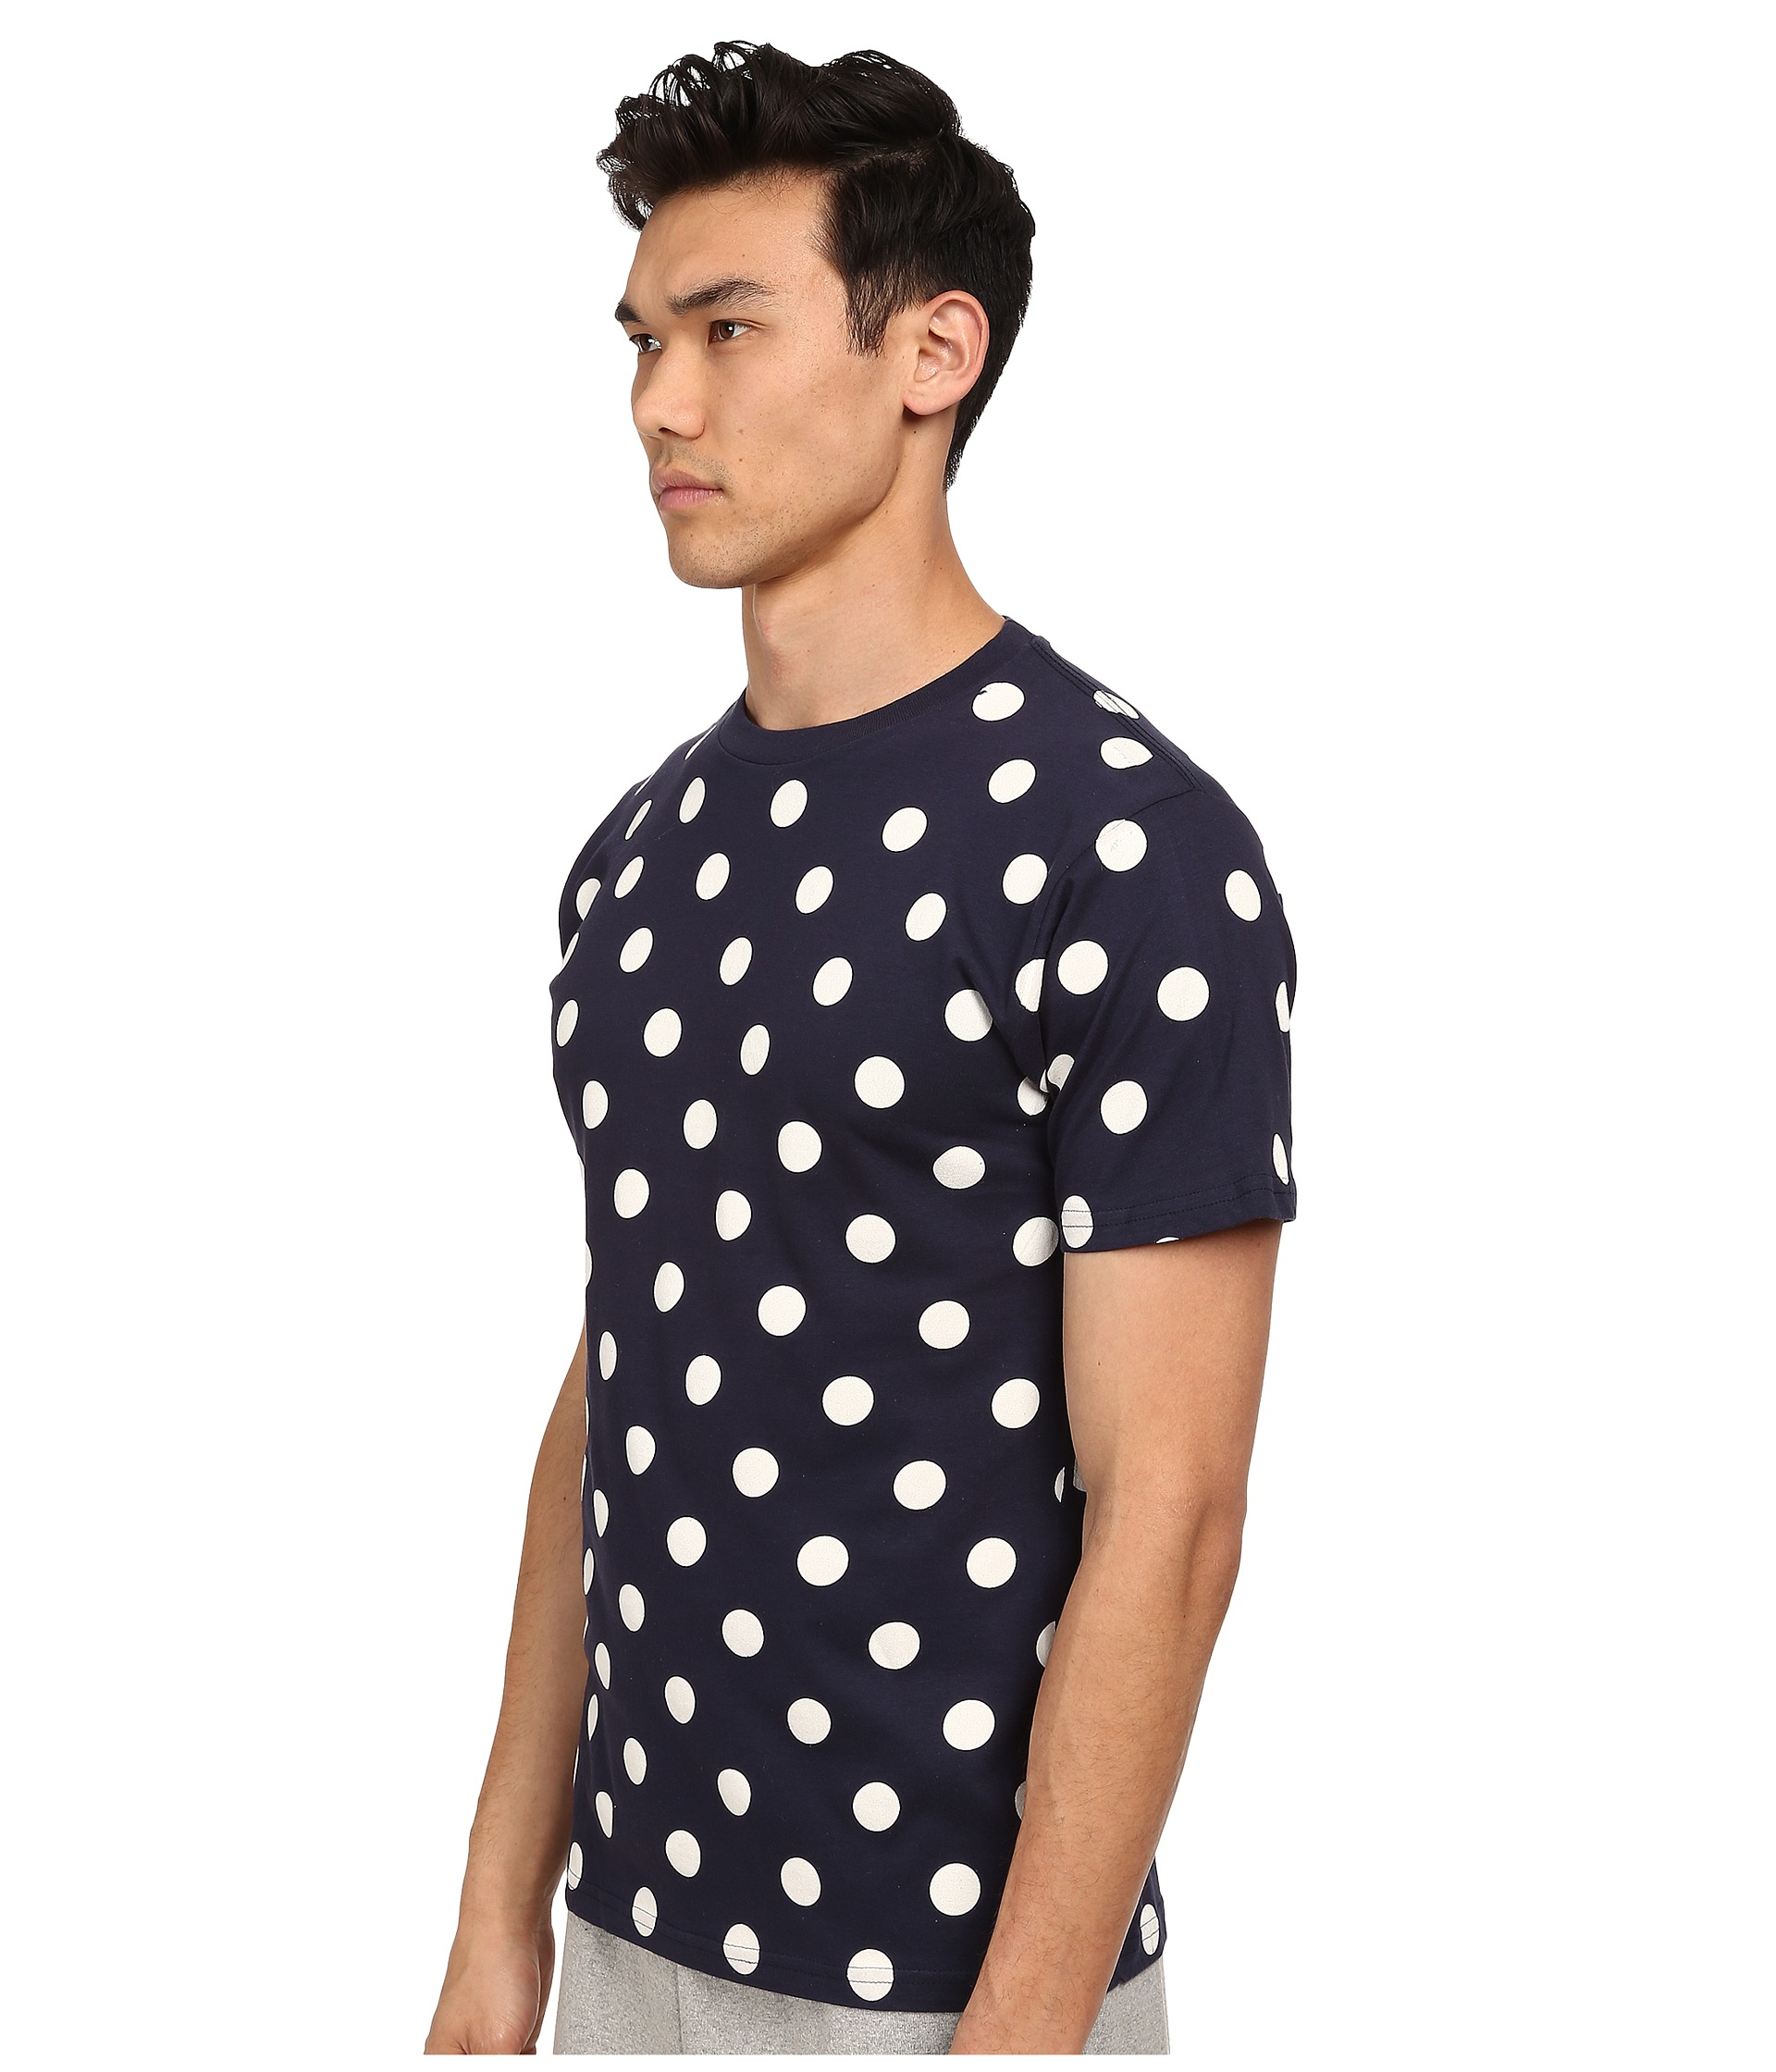 Occasion: This unique casual Polka dot striped t-shirt well with jeans Green Spots Polka dot T-shirt. by Abstract design Studio. $ $ 15 99 Prime. FREE Shipping on eligible orders. Some sizes/colors are Prime eligible. Blue heart shape polka dot tee t shirt. by Dot dot dots. $ $ 15 99 Prime.